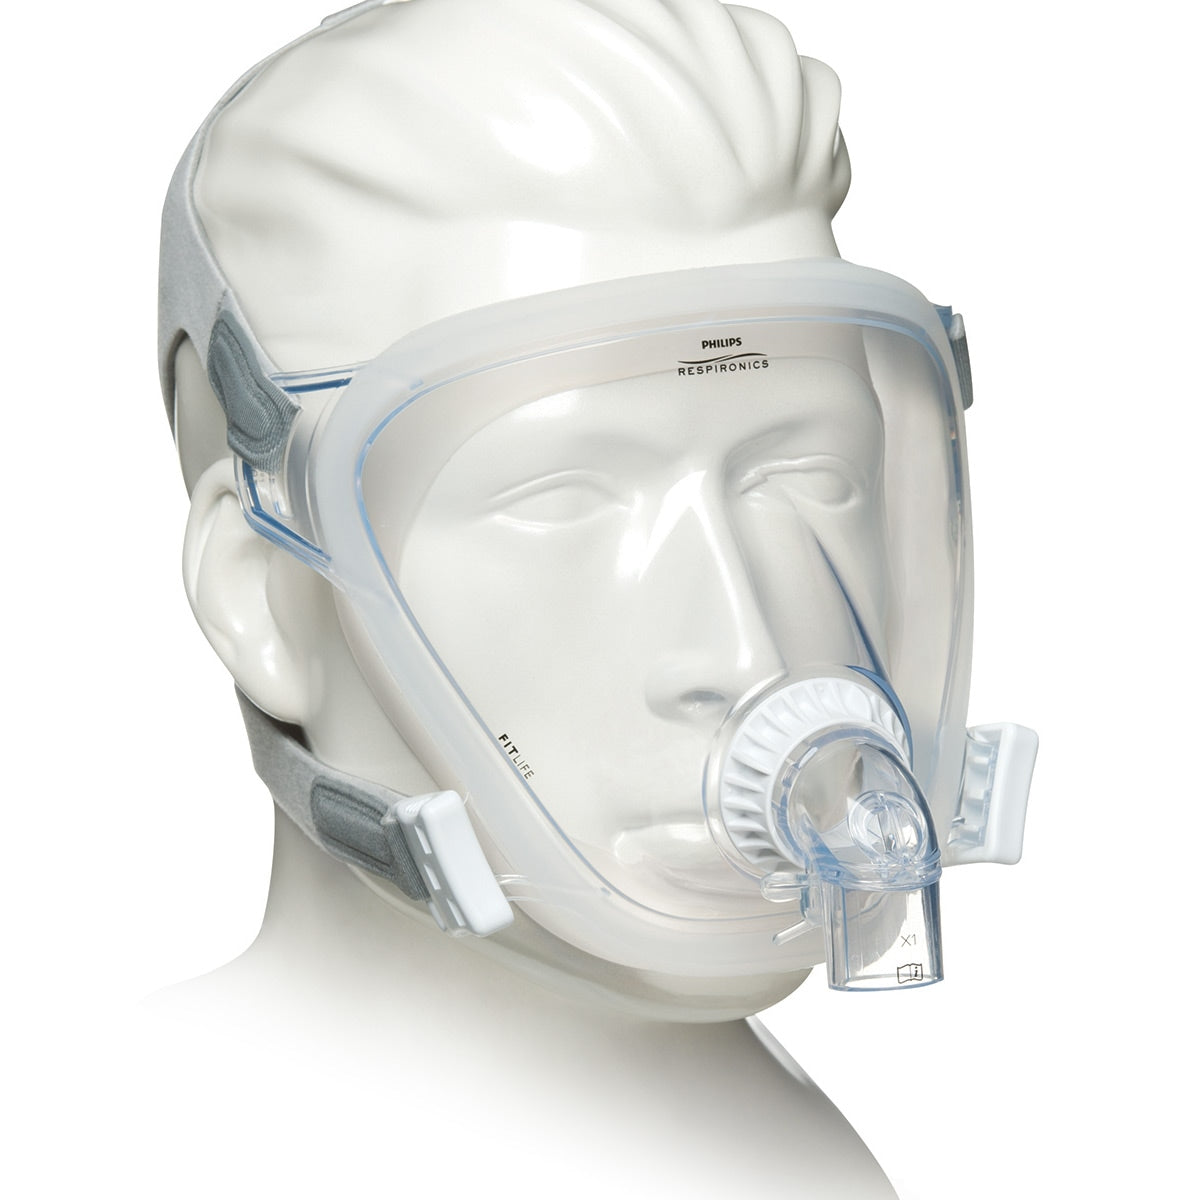 Side view of clear full face mask from FitLife Total Face CPAP Mask With Light Grey Headgear by Phillips Respironics.